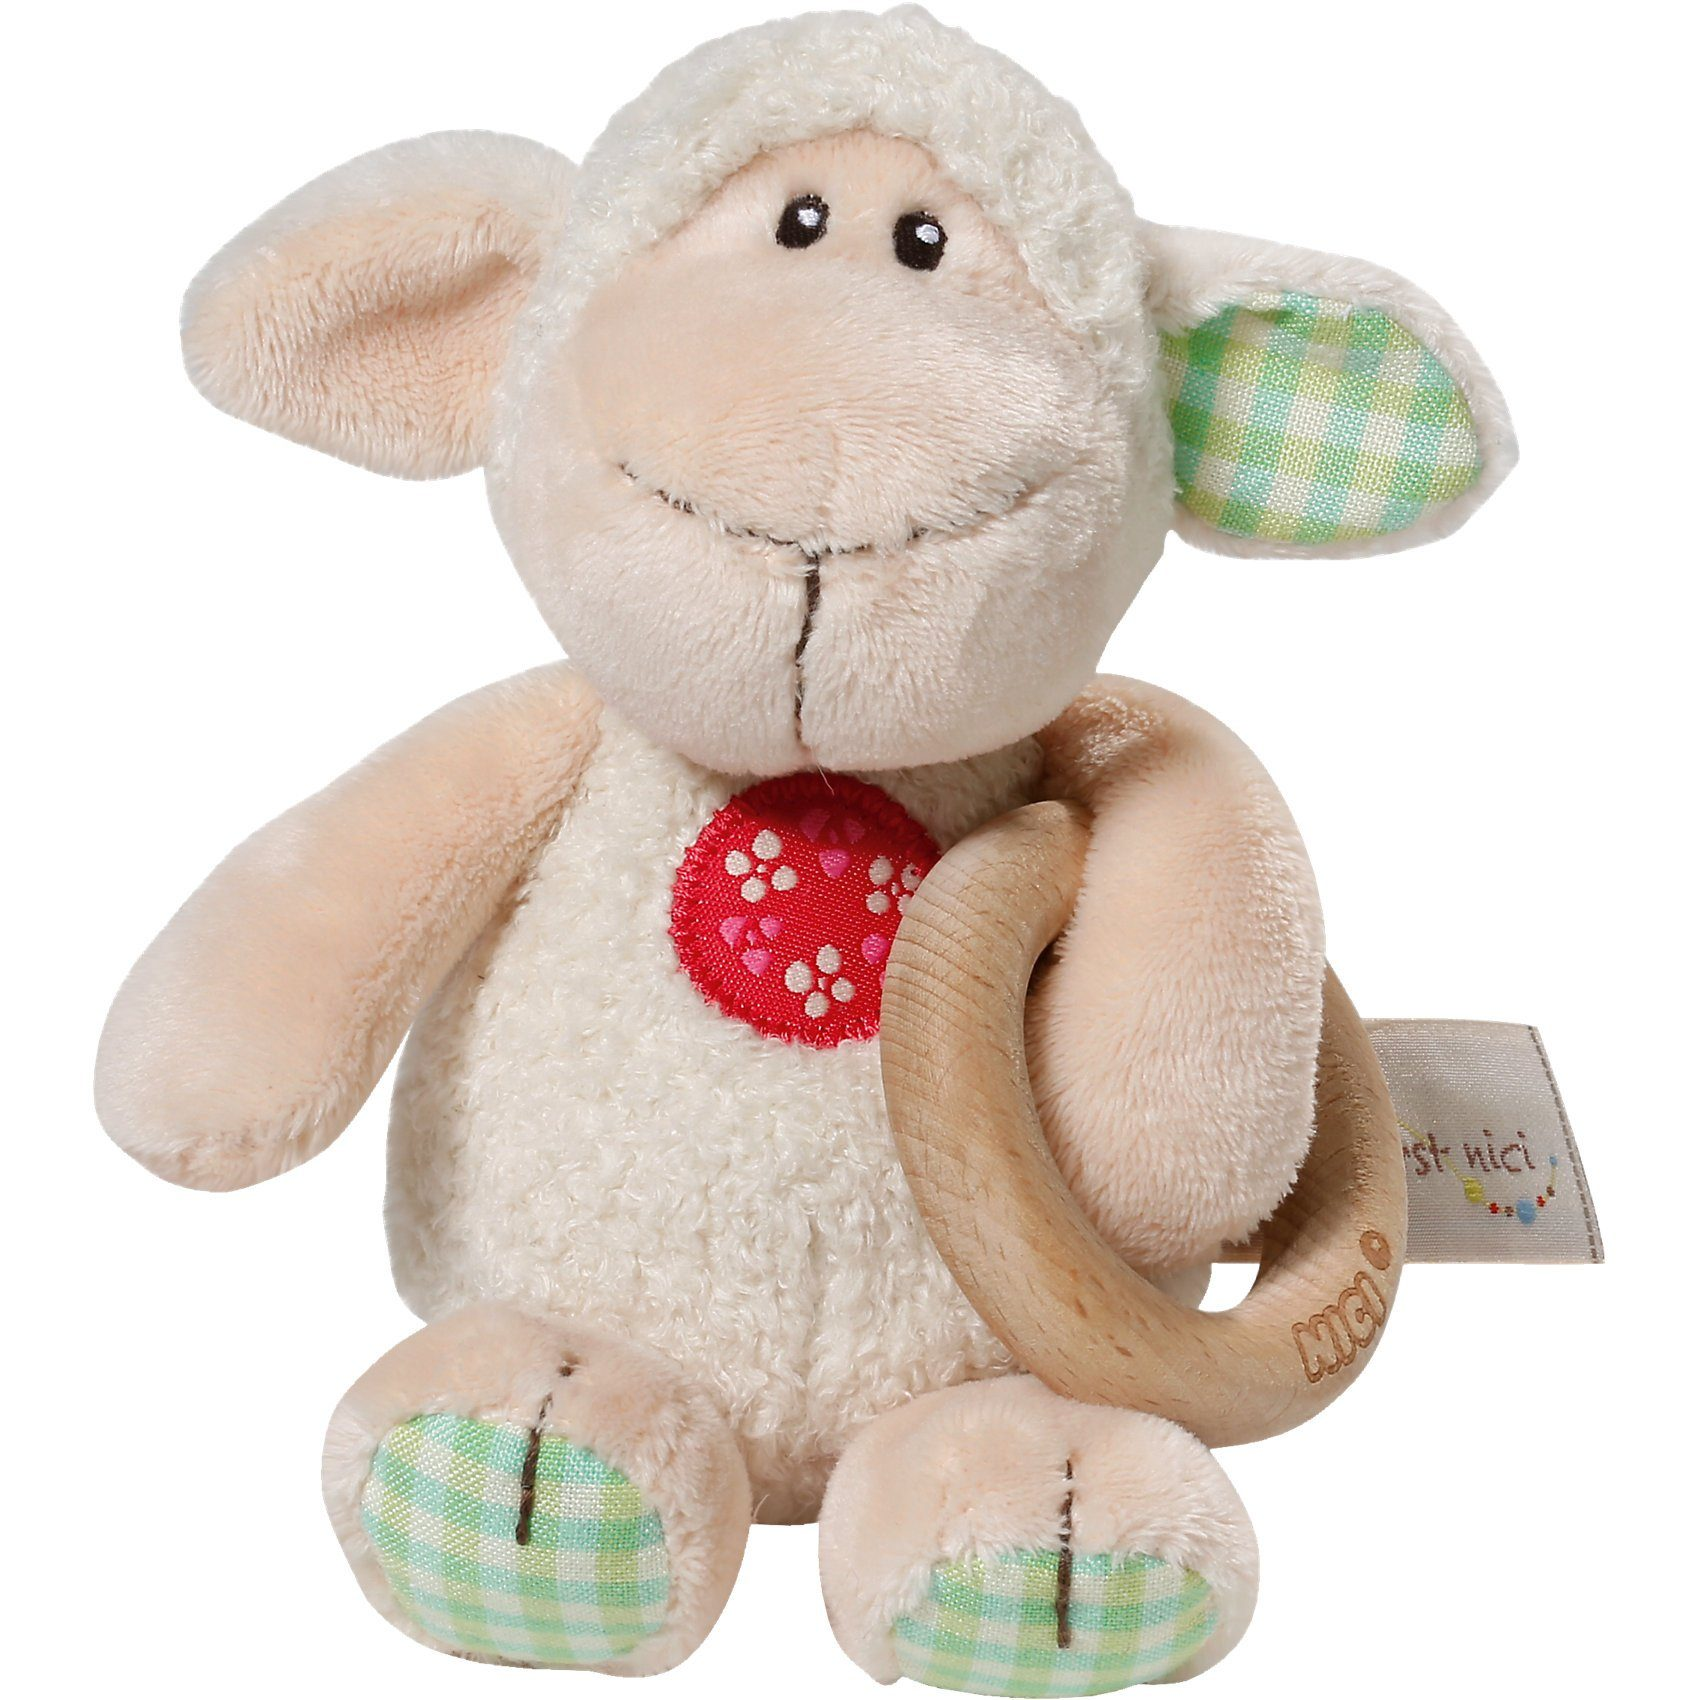 NICI My First 37881 Greifling Lamm Monny mit Holzring